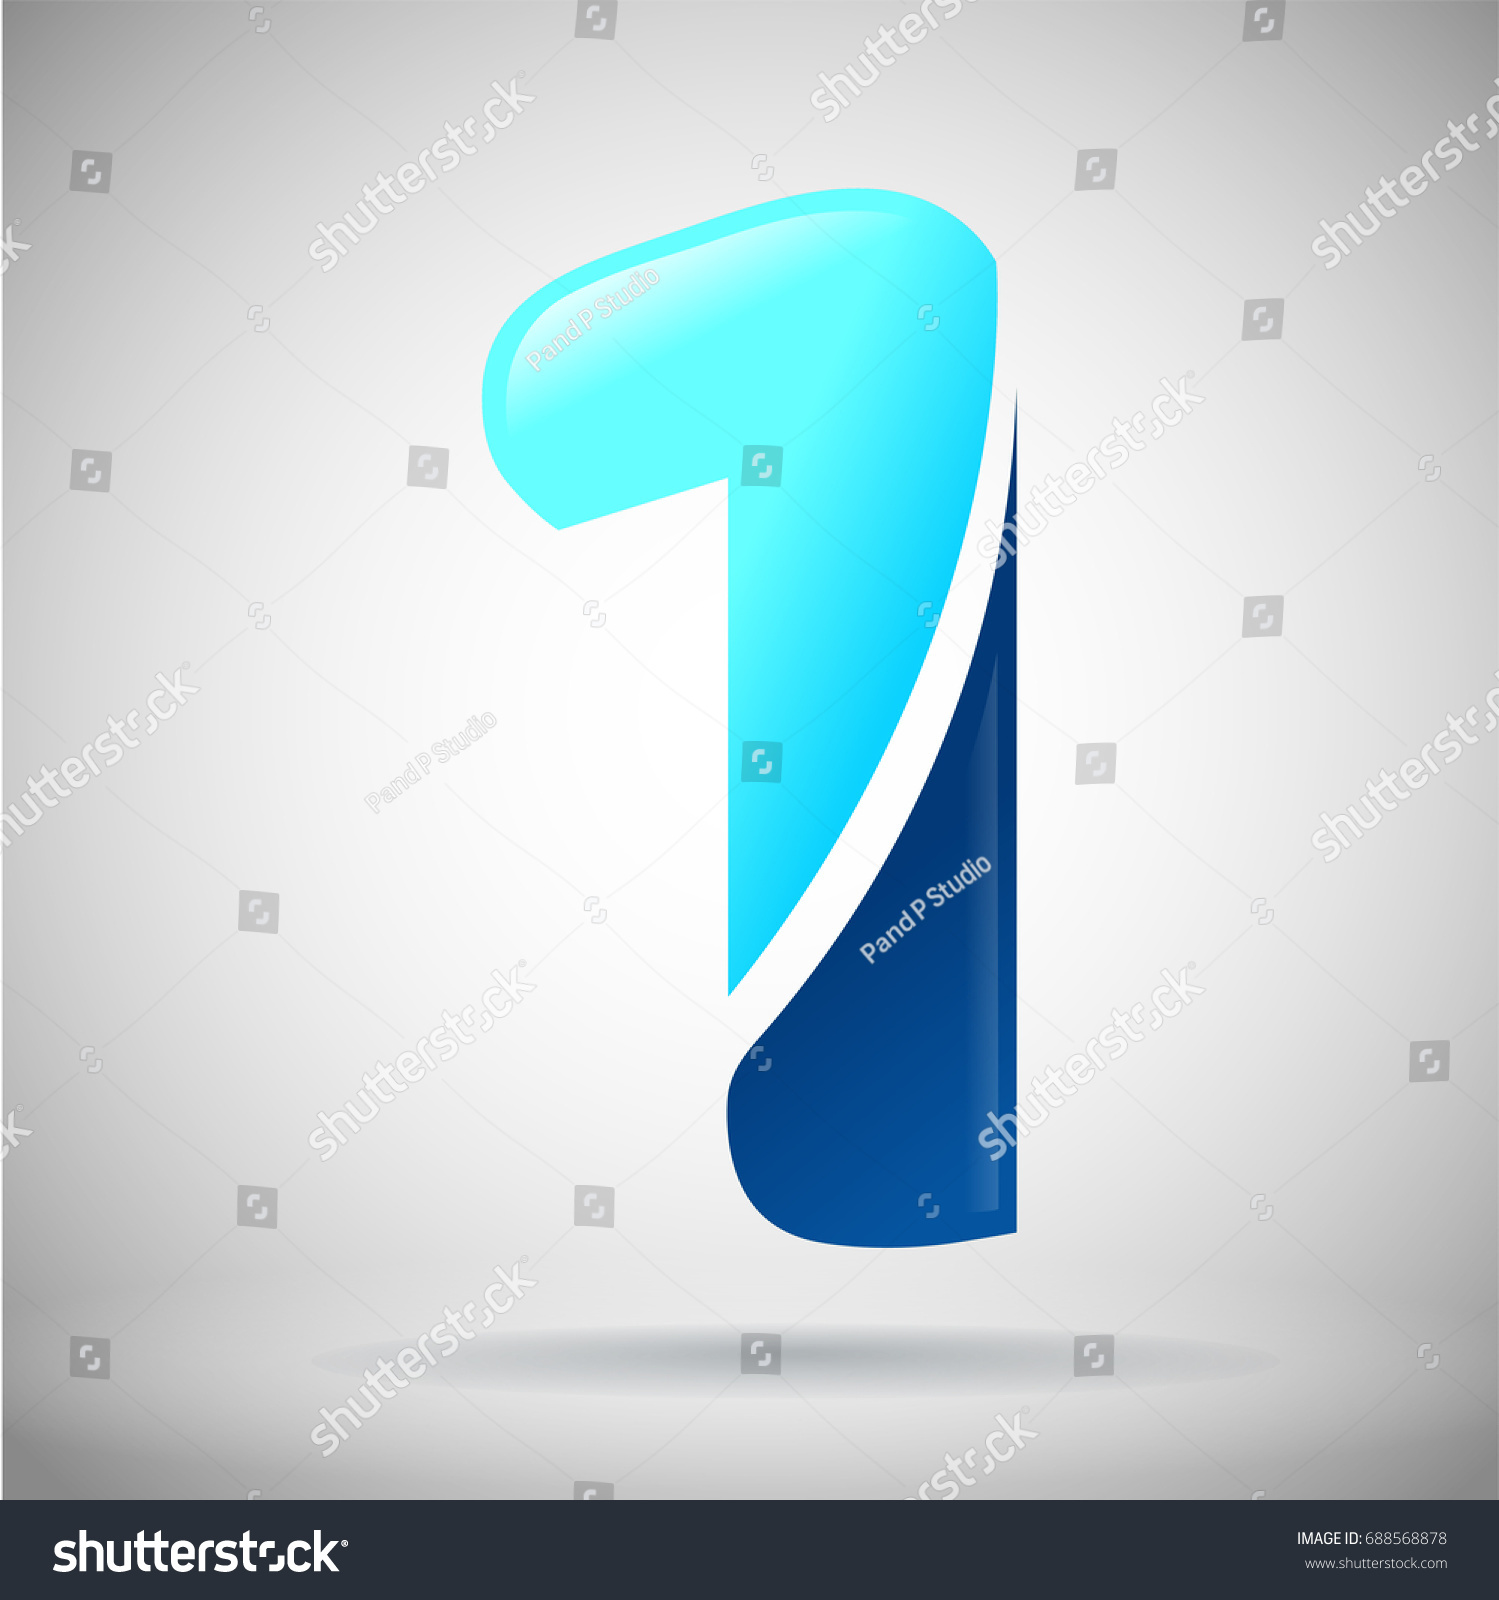 Number One Logo. Blue And Light Blue Glossy Style. Vector Design Template  Elements For